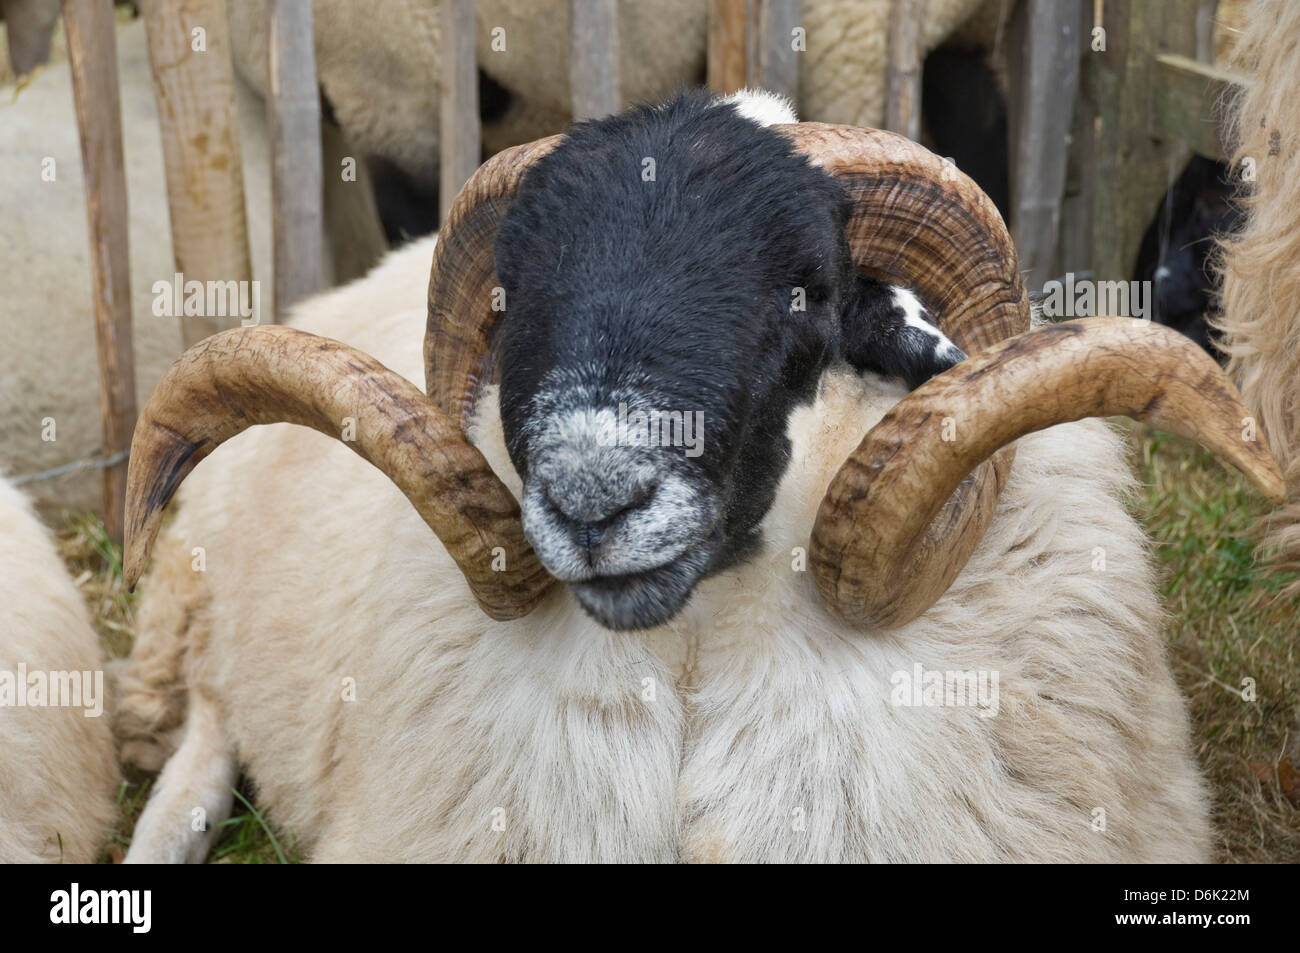 Dartmoor sheep, ram's head with curly horns, Widecombe Fair, Dartmoor, Dartmoor National Park, Devon, England, - Stock Image